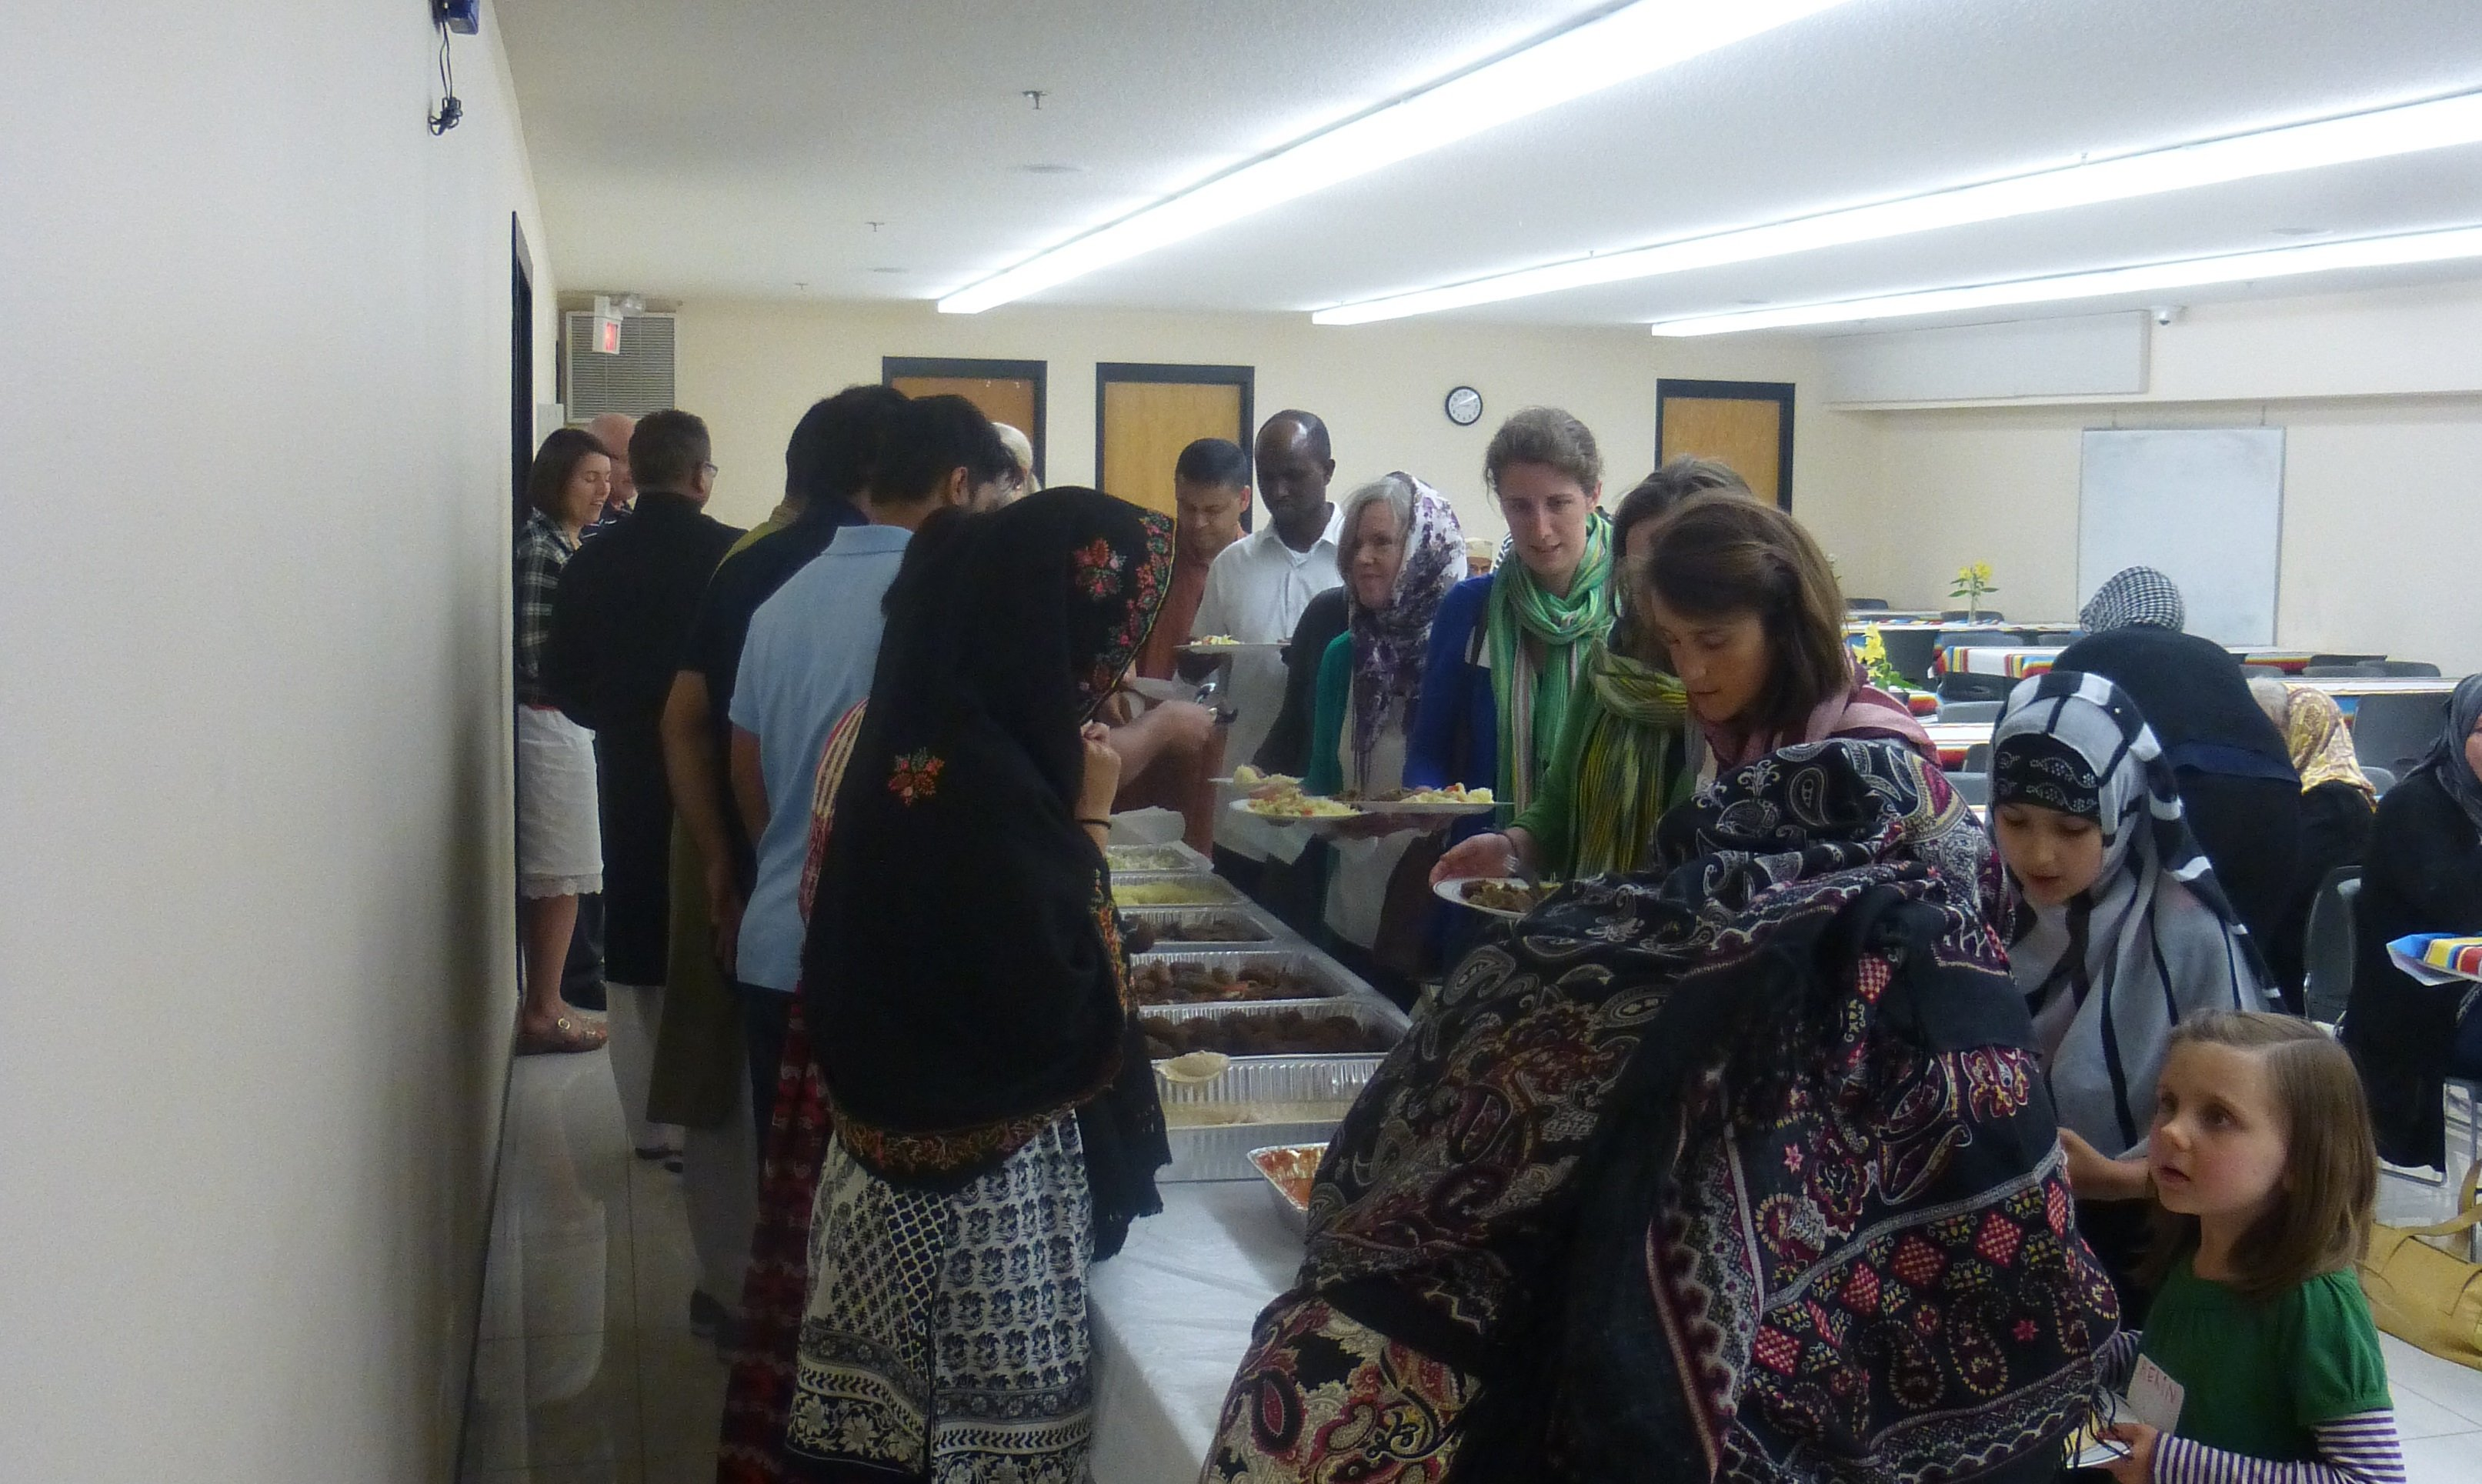 (Photo by Ellen Squires) Participants line up to eat from the Iftar buffet at the end of the program.